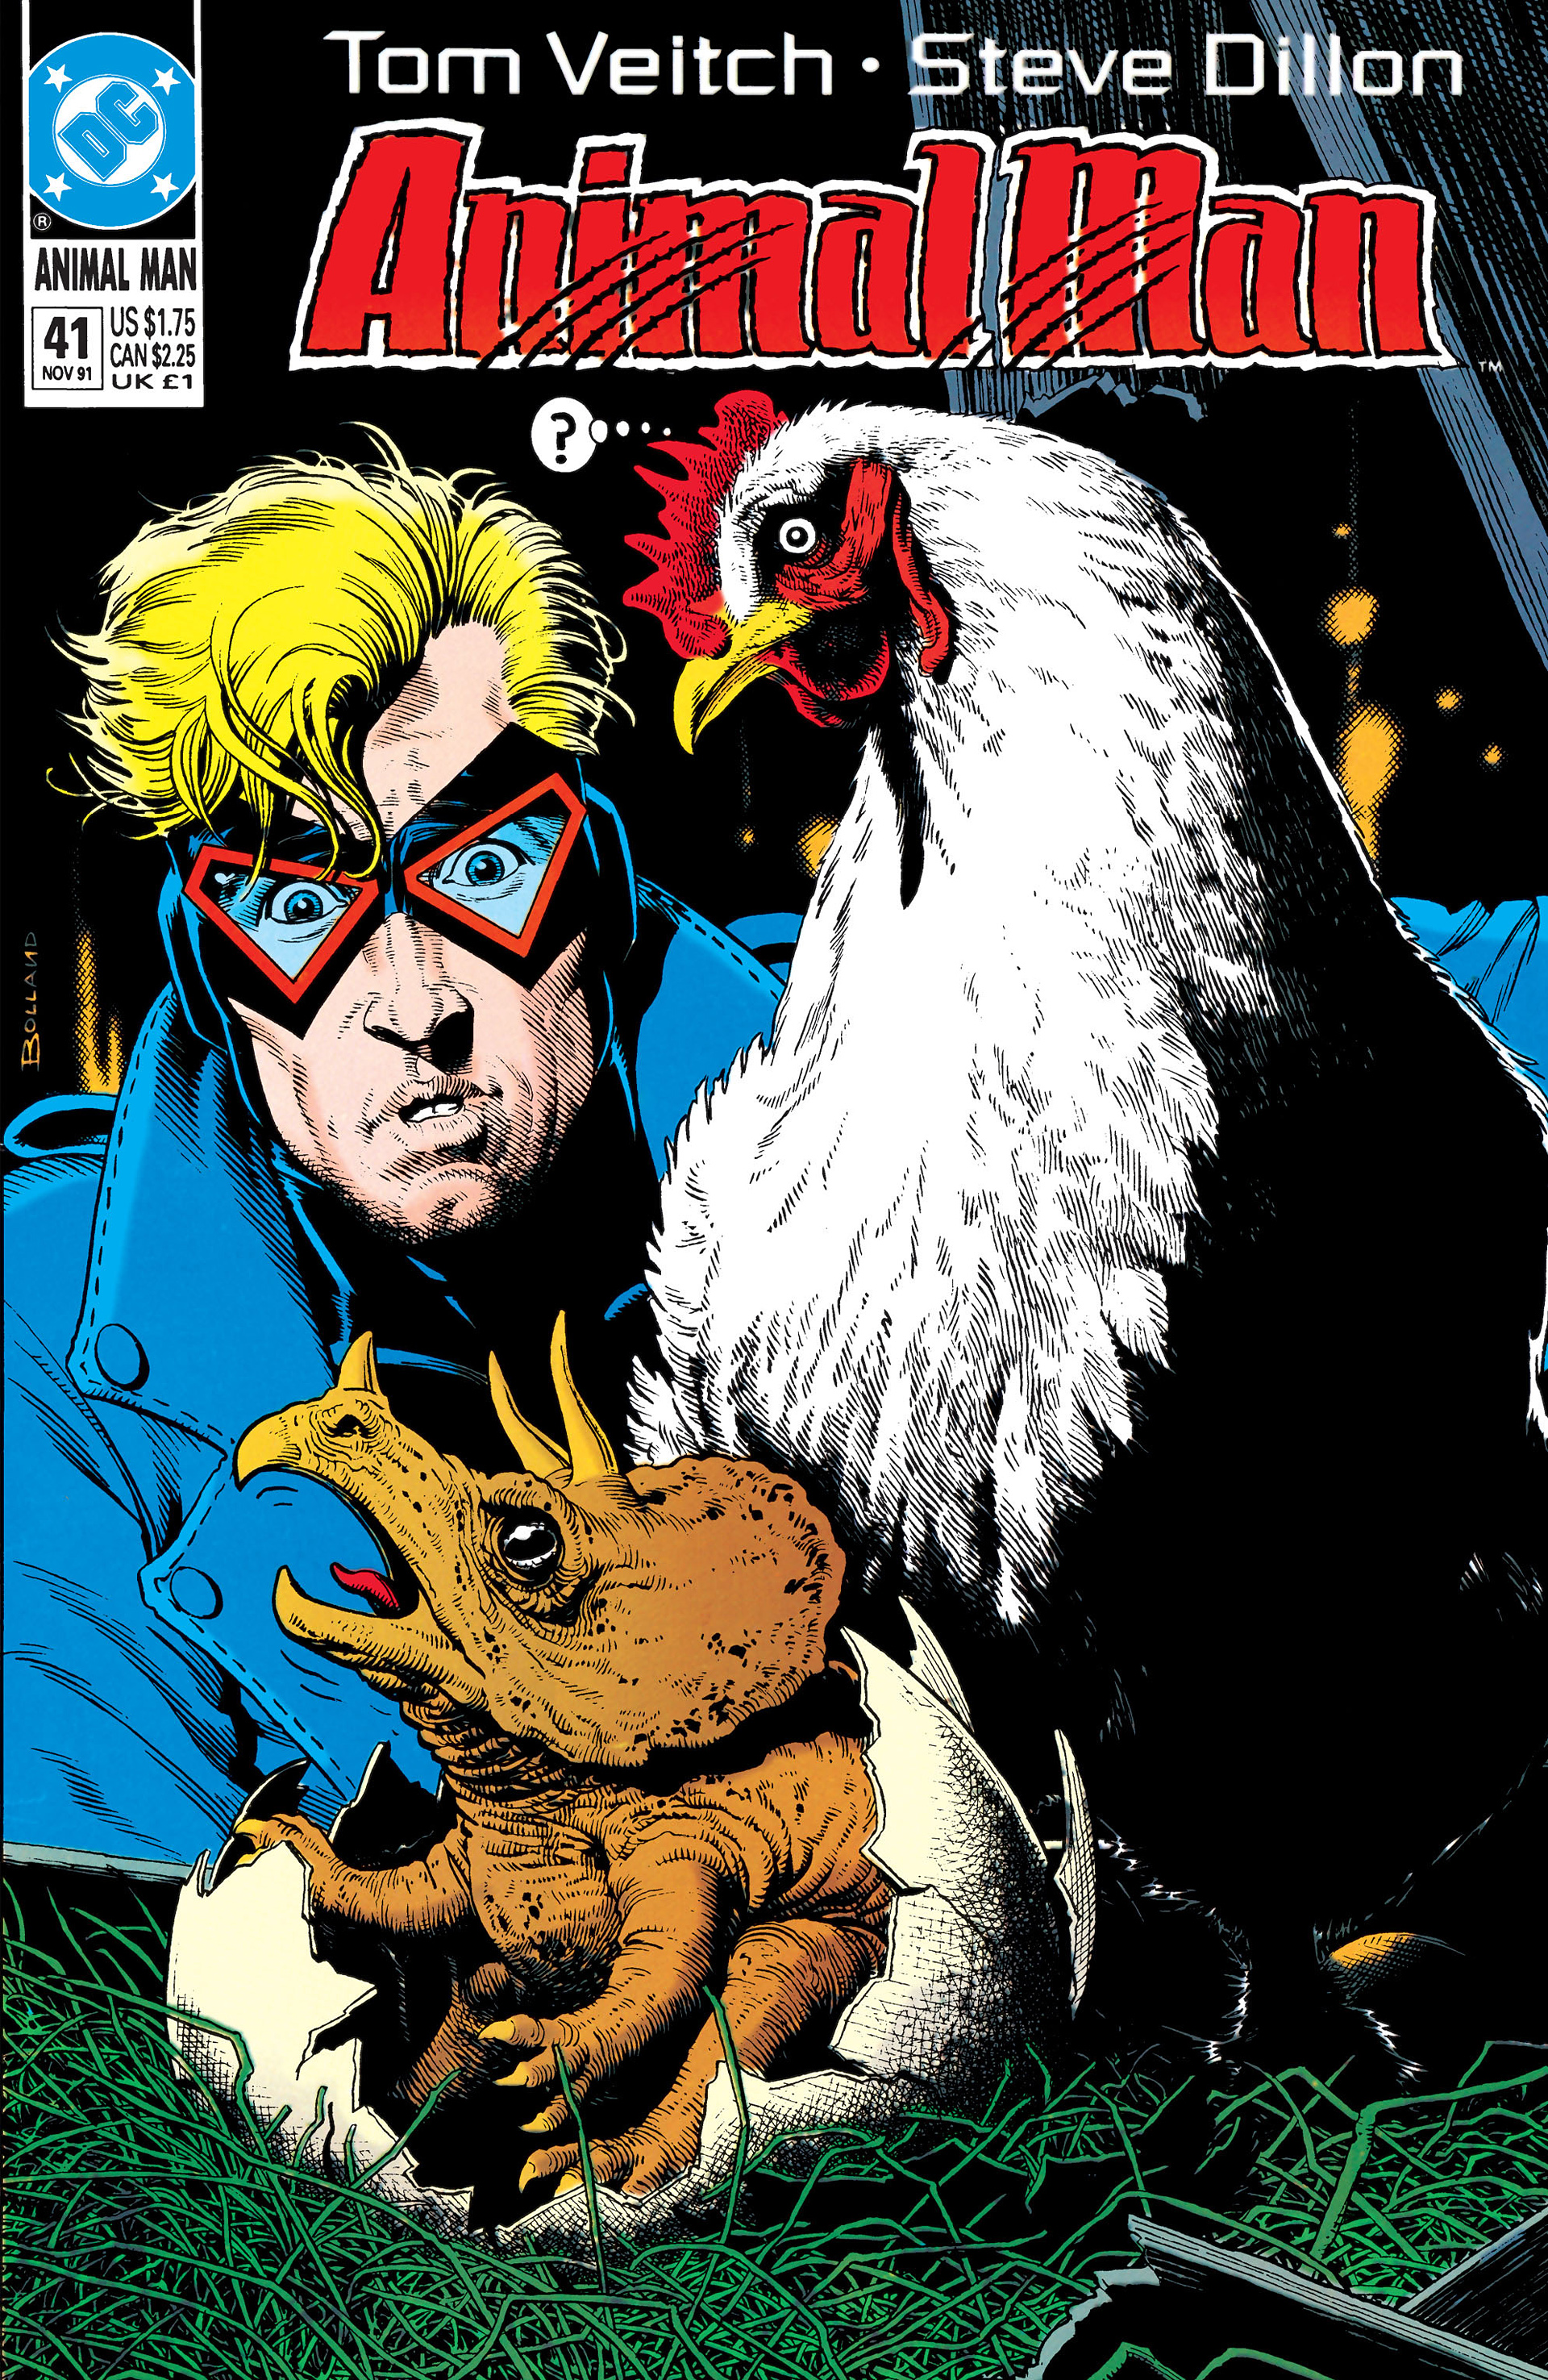 Animal Man issue 41 - Page 1